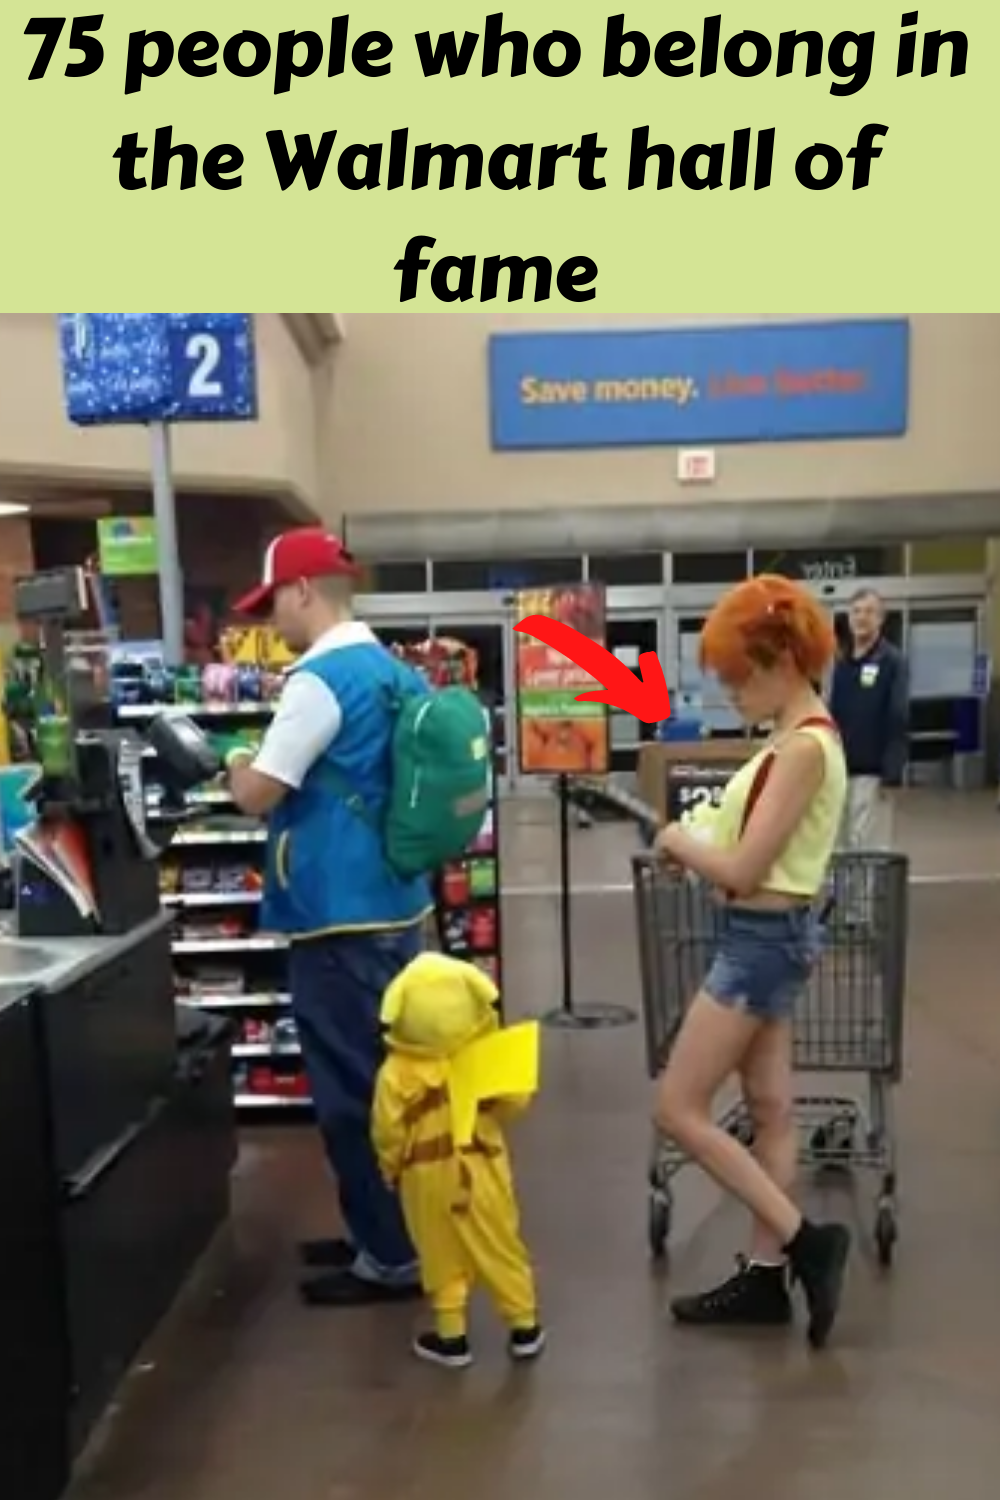 75 people who belong in the Walmart hall of fame